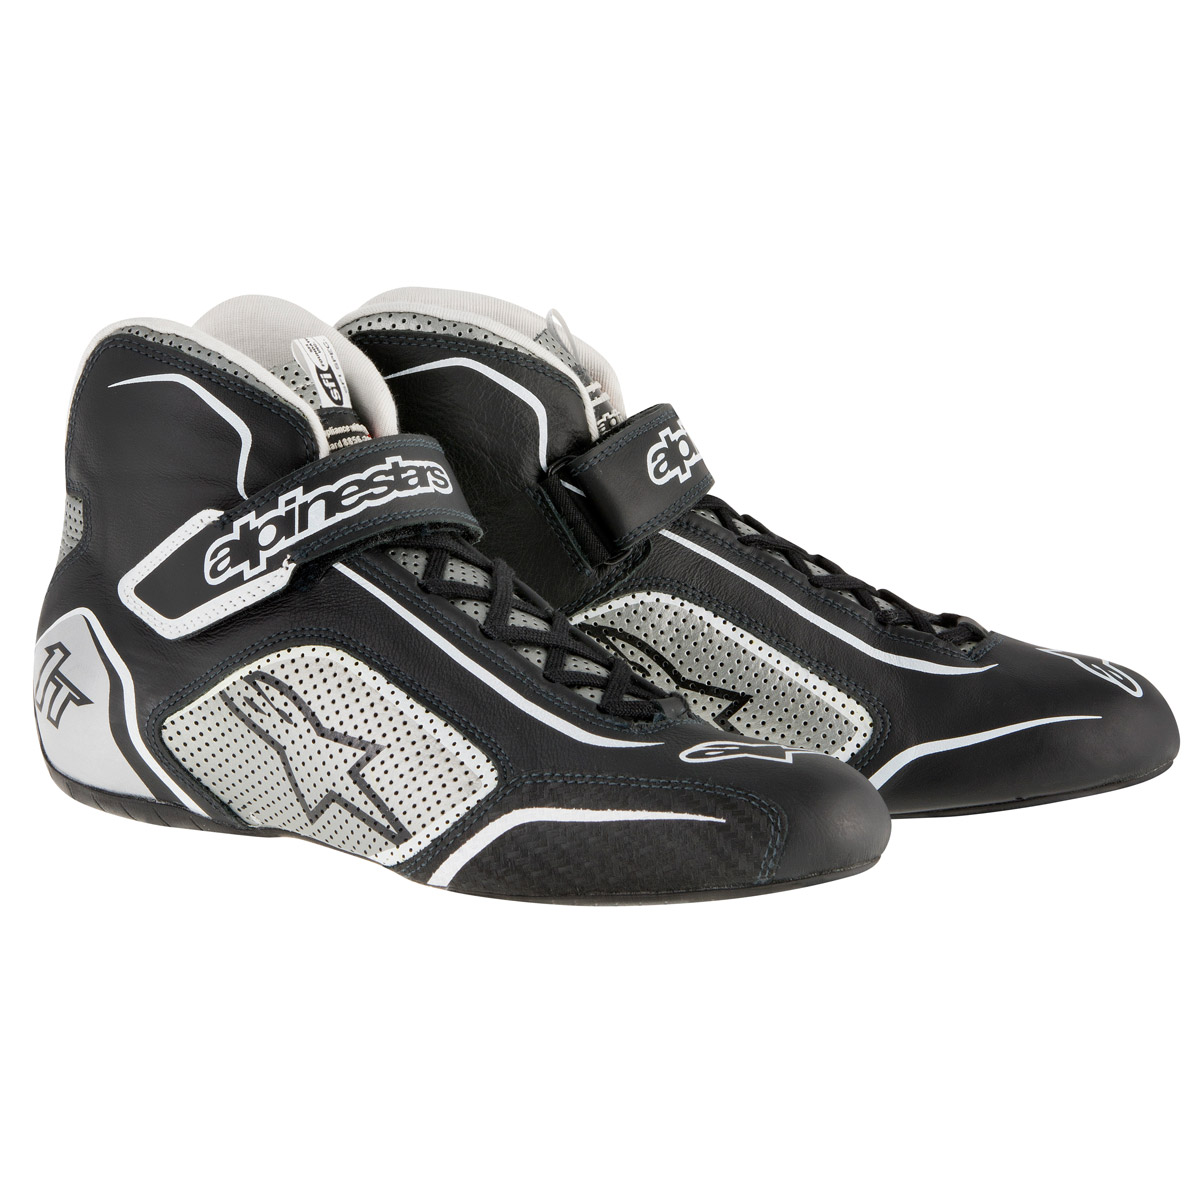 New Alpinestars Tech 1-T Shoe